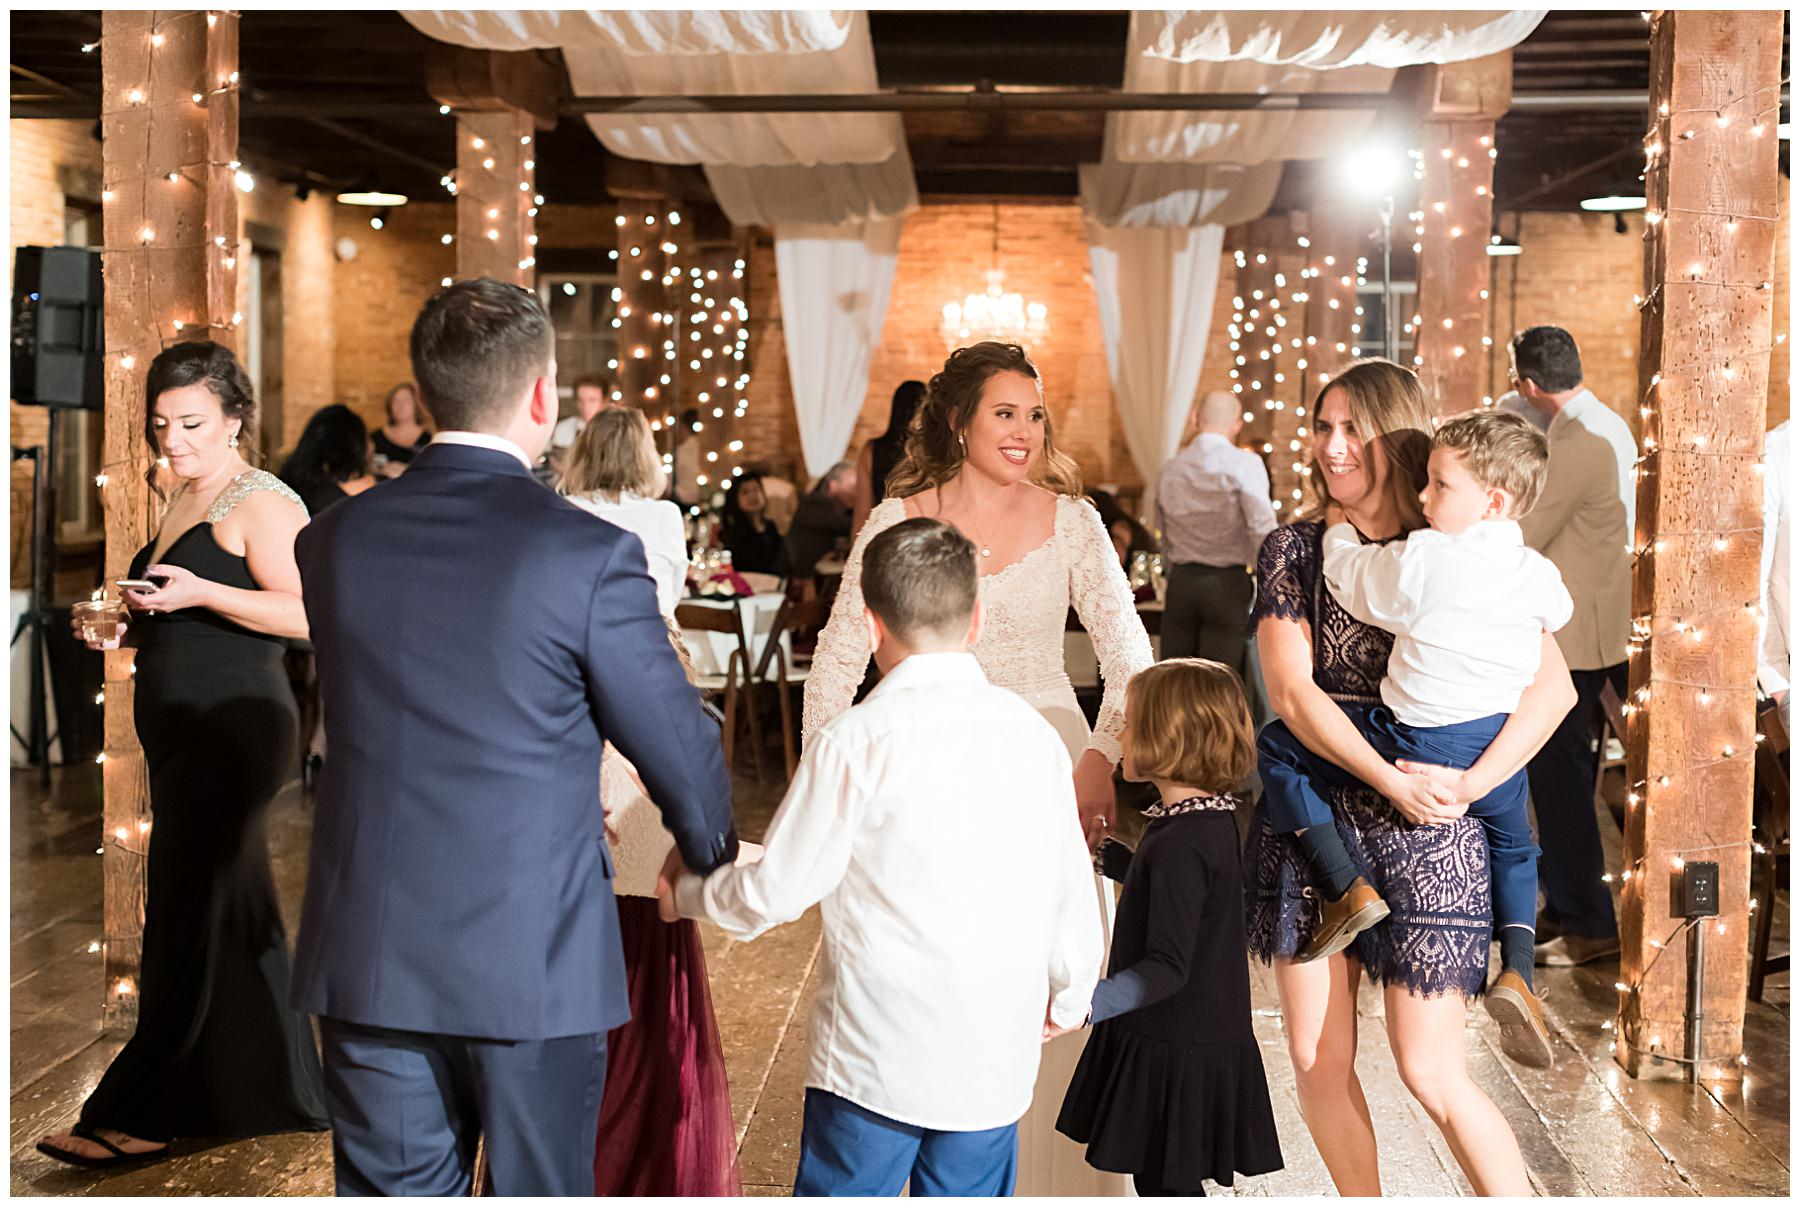 manheim pa wedding venue dancing